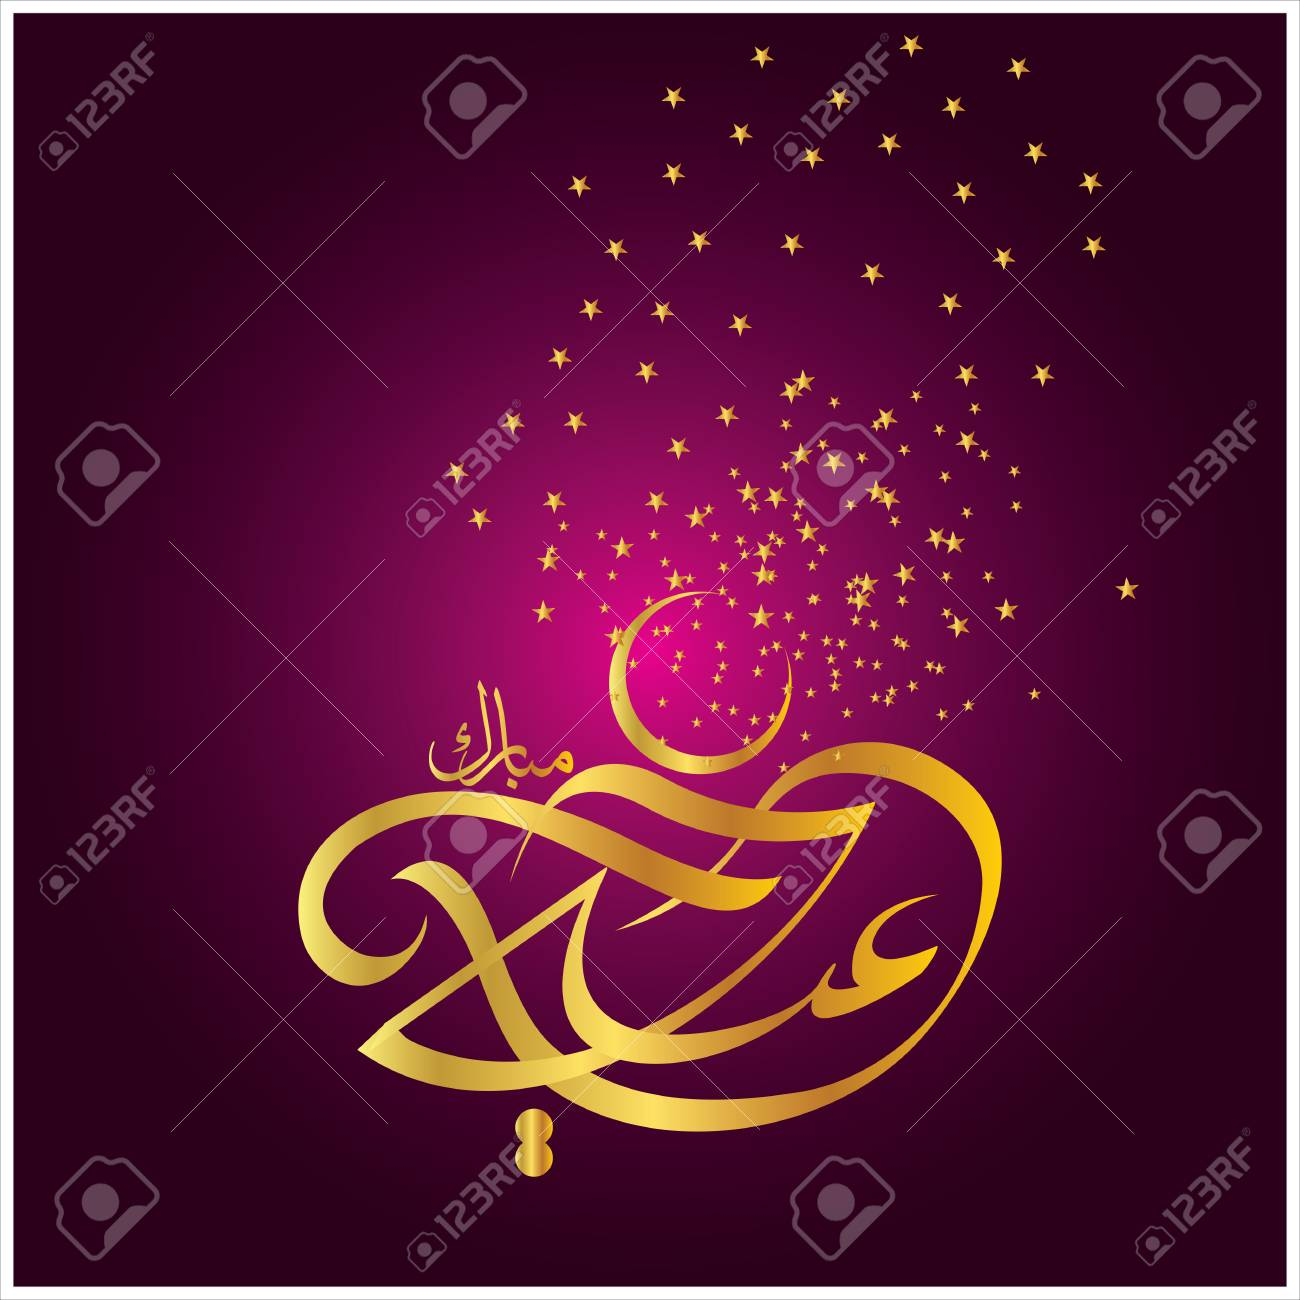 Happy eid mubarak arabic calligraphy for greeting card muslims happy eid mubarak arabic calligraphy for greeting card muslims celebrating festival stock vector 99825550 m4hsunfo